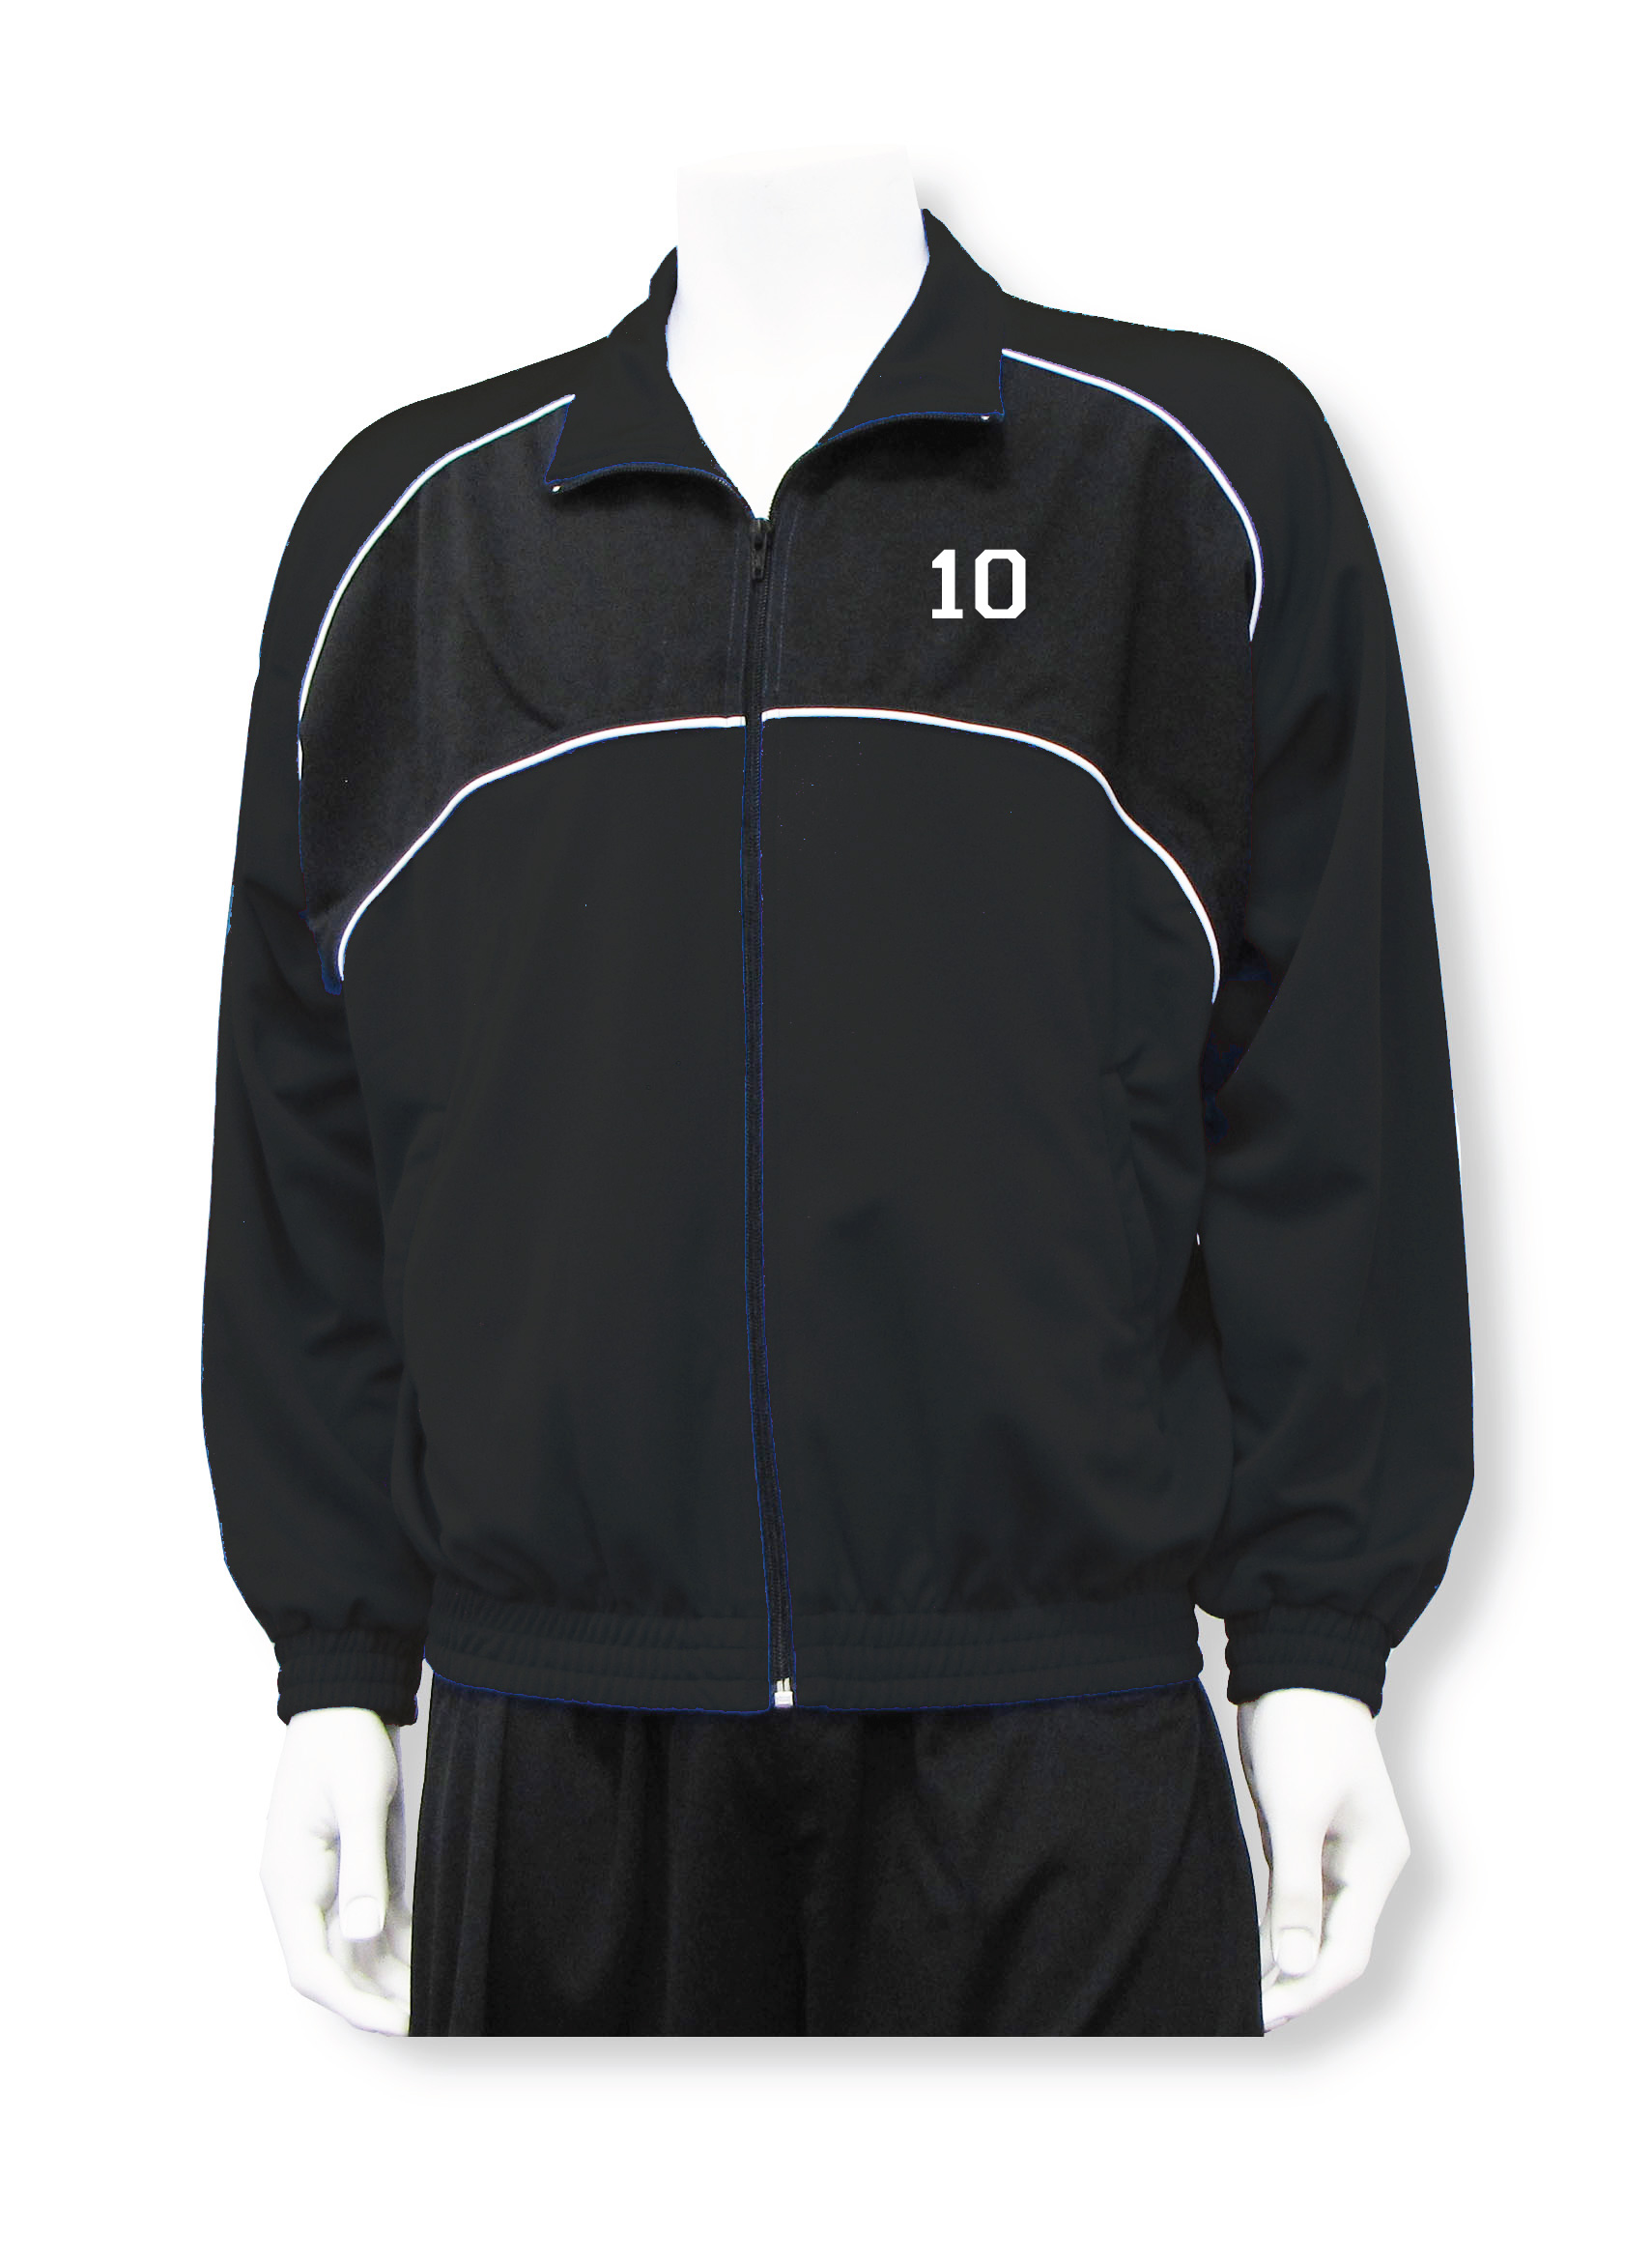 Crossfire soccer warm up jacket with number in black/black by Code Four Athletics